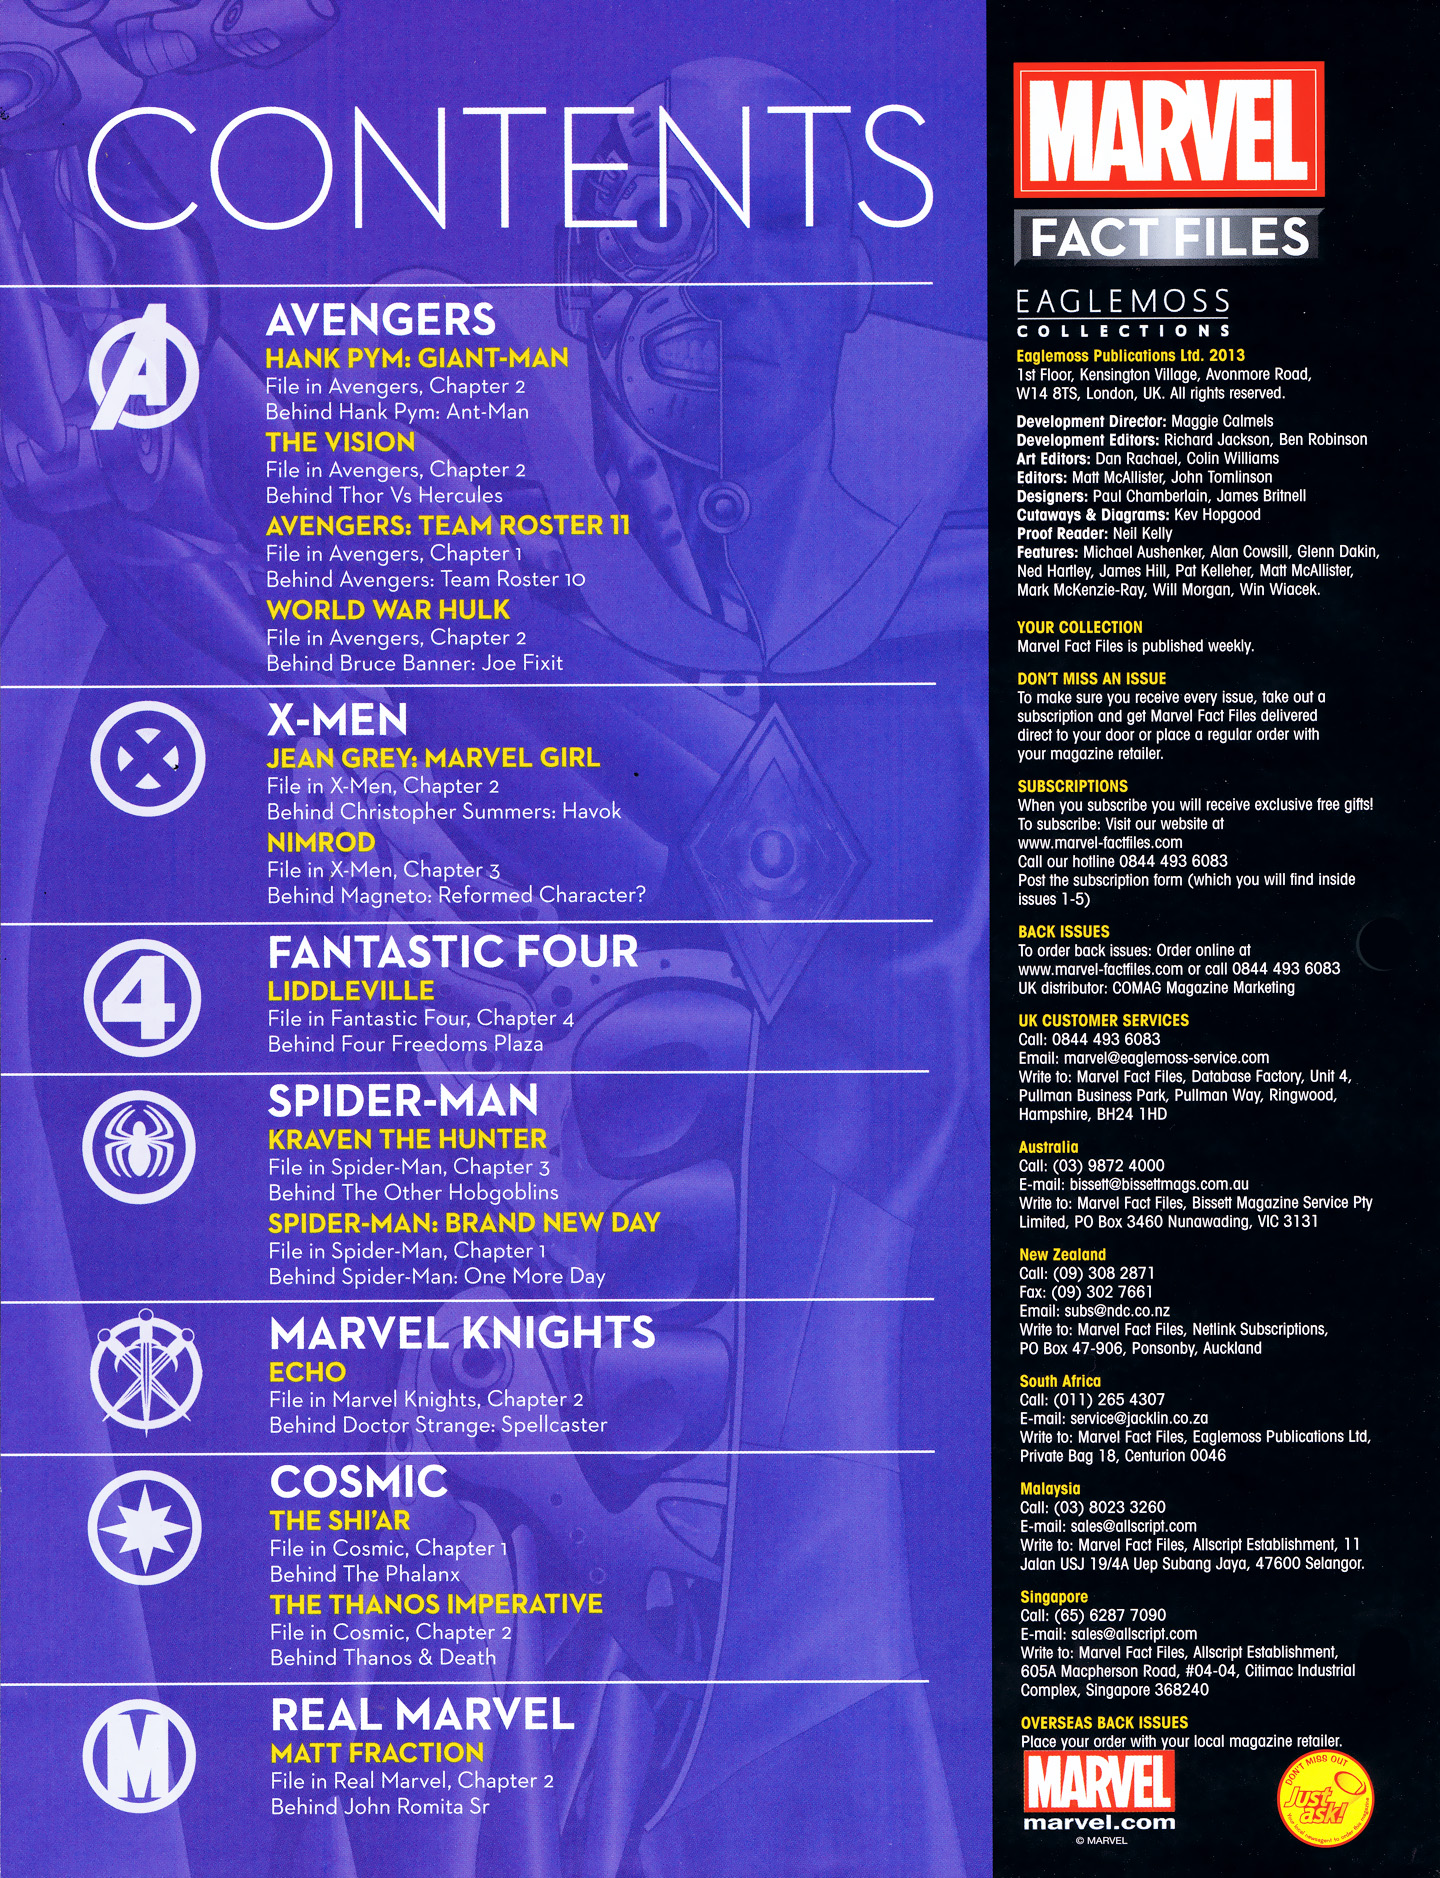 Marvel Fact Files 38 Page 3